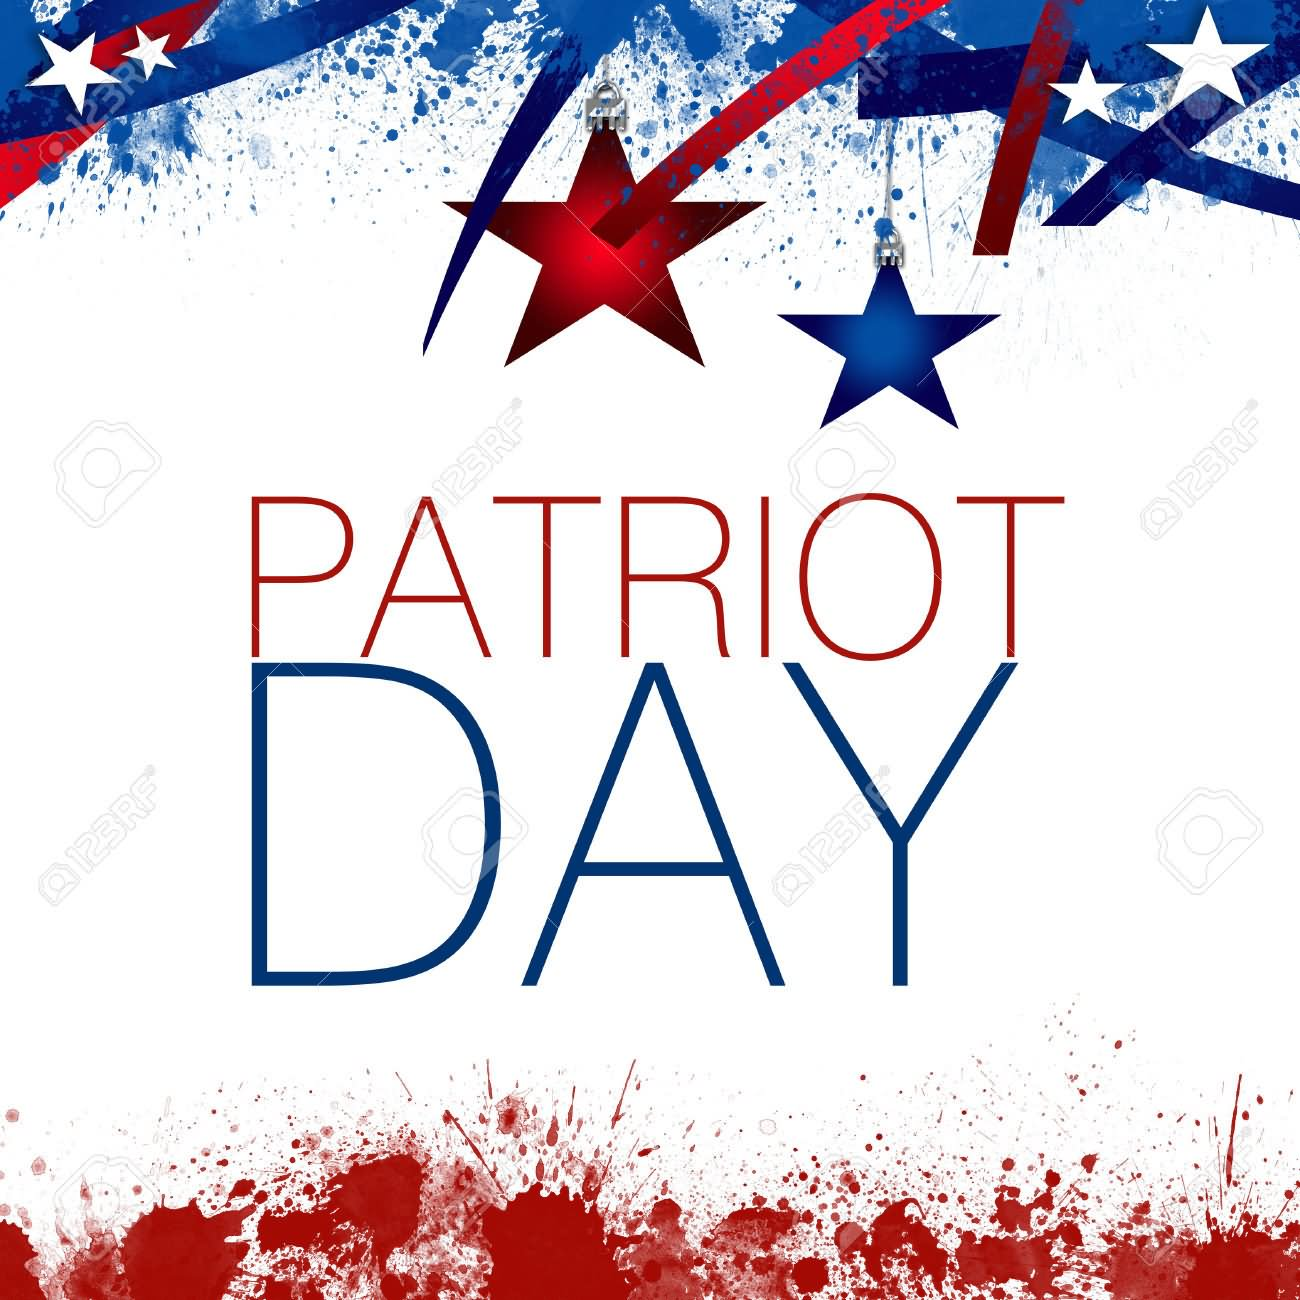 Patriot day clipart image freeuse 55 Amazing Patriot Day Pictures And Images image freeuse